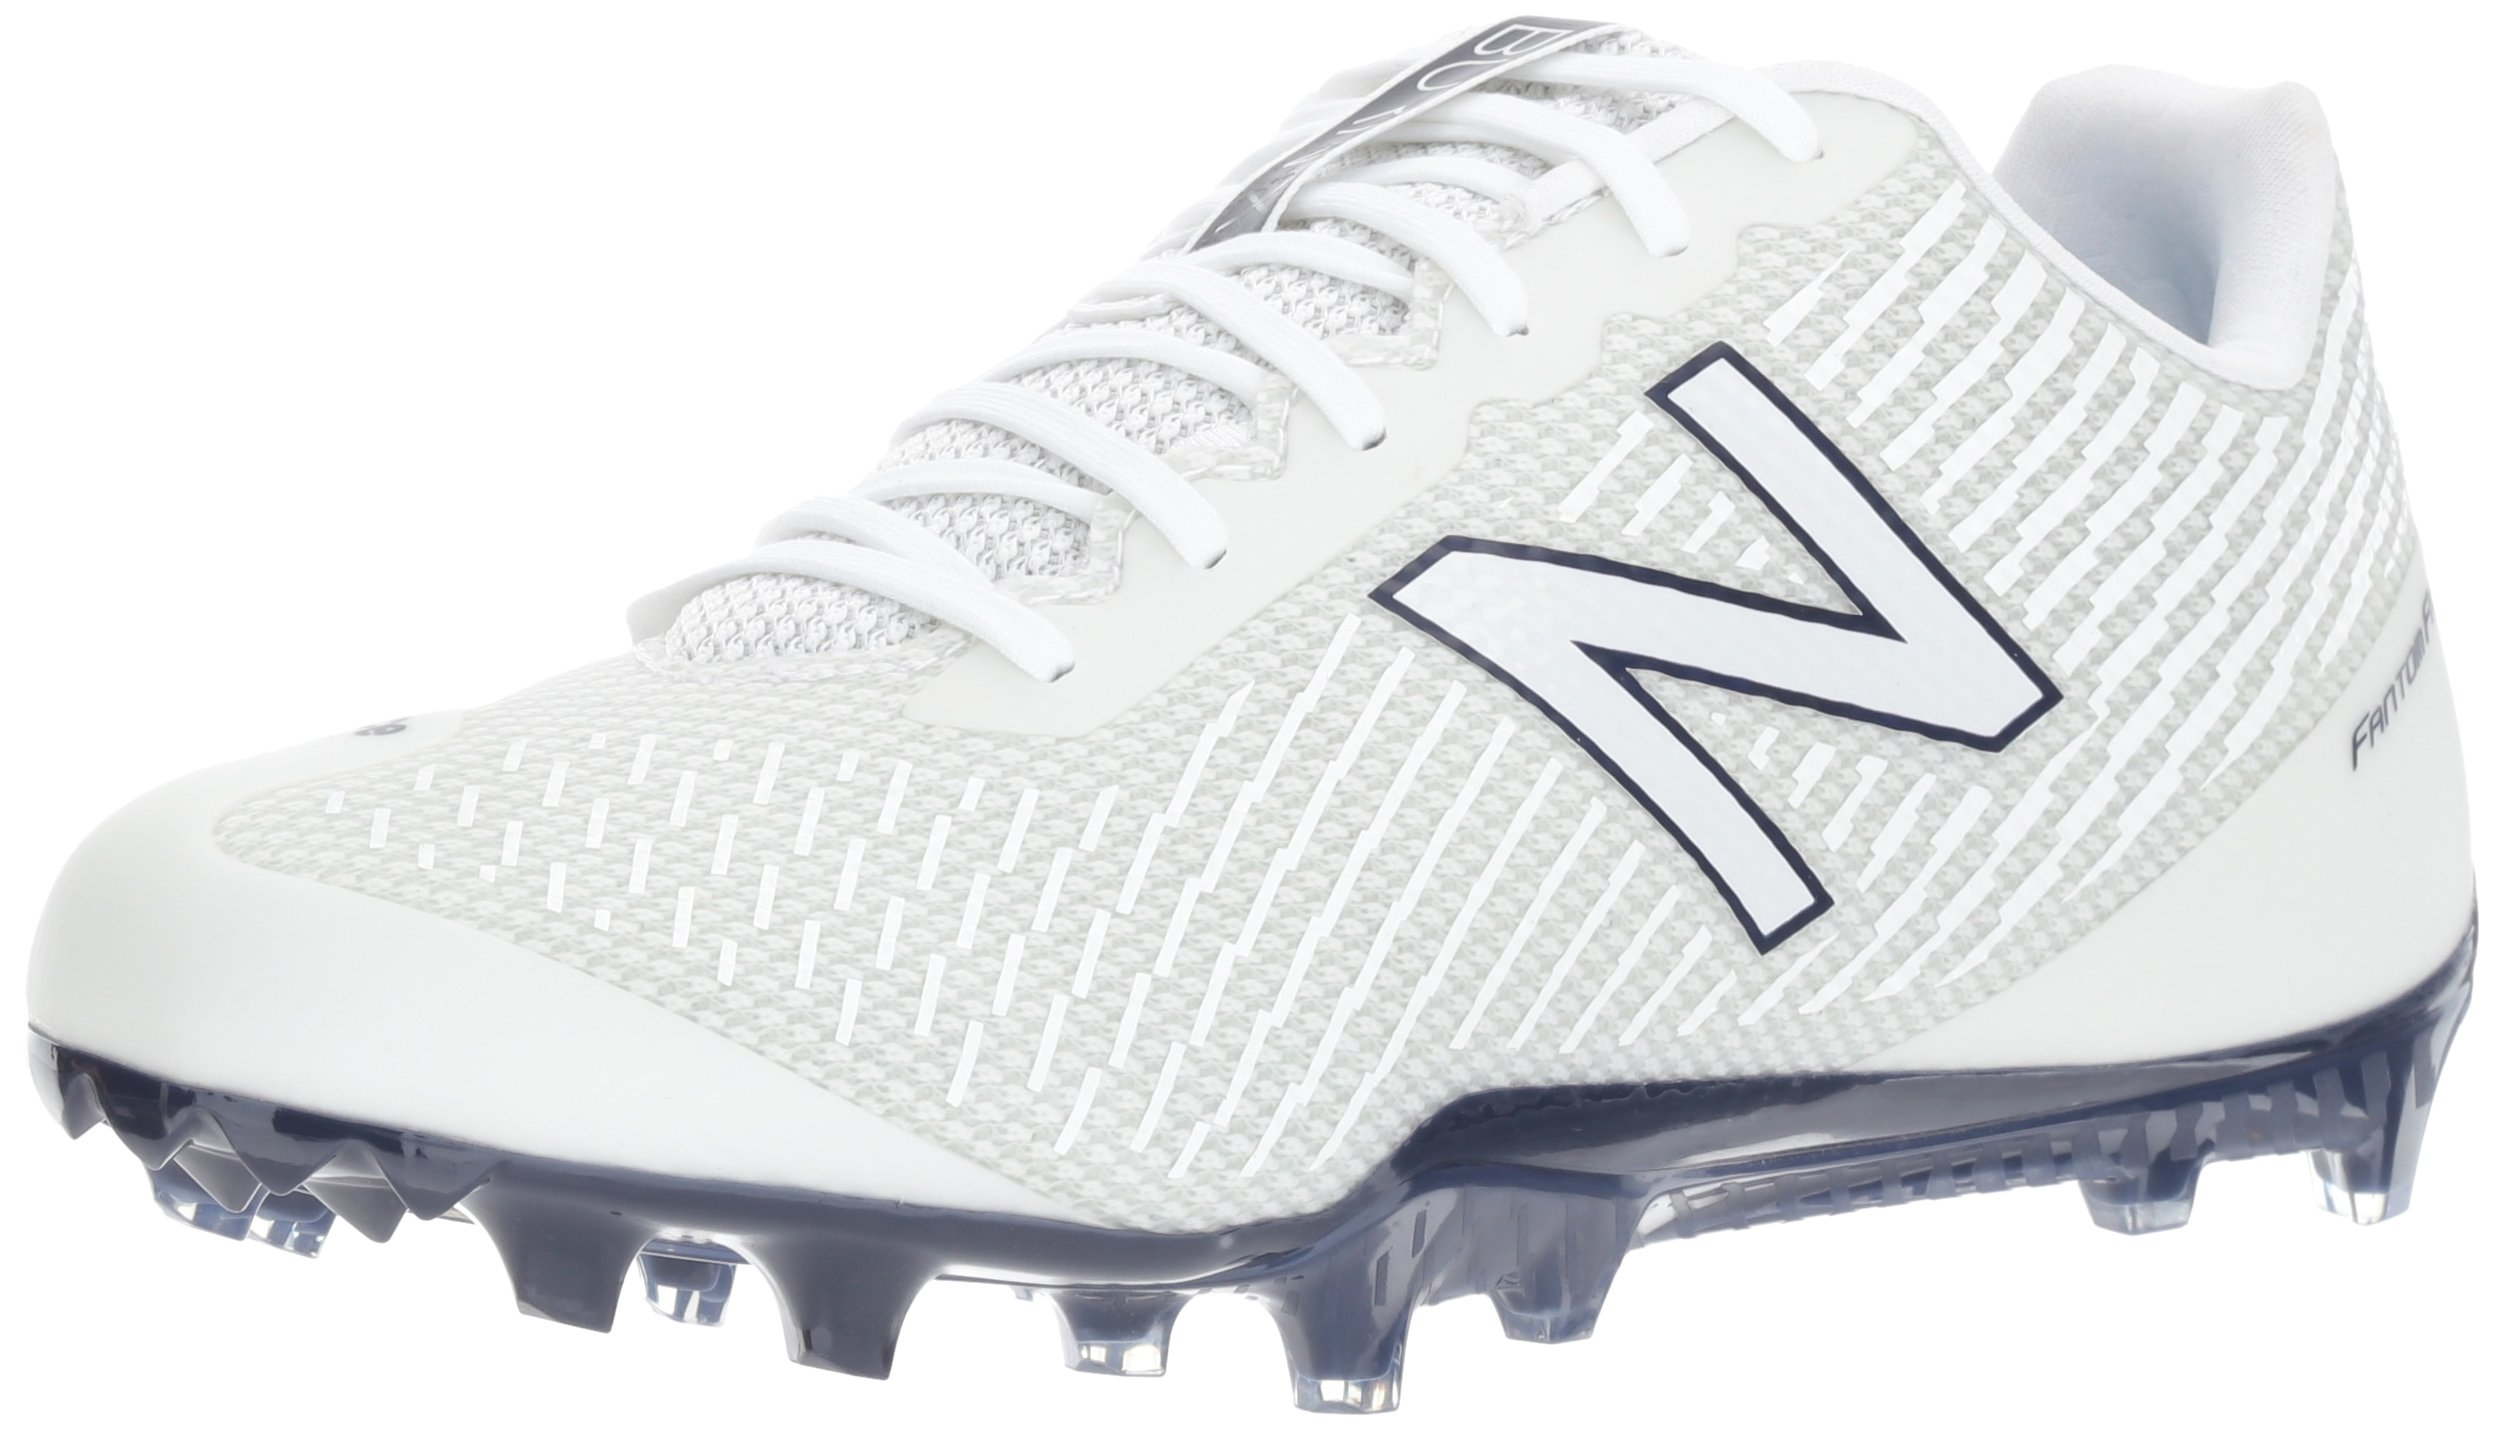 New Balance Men's BURN Low Speed Lacrosse Shoe, White/Blue, 6.5 2E US by New Balance